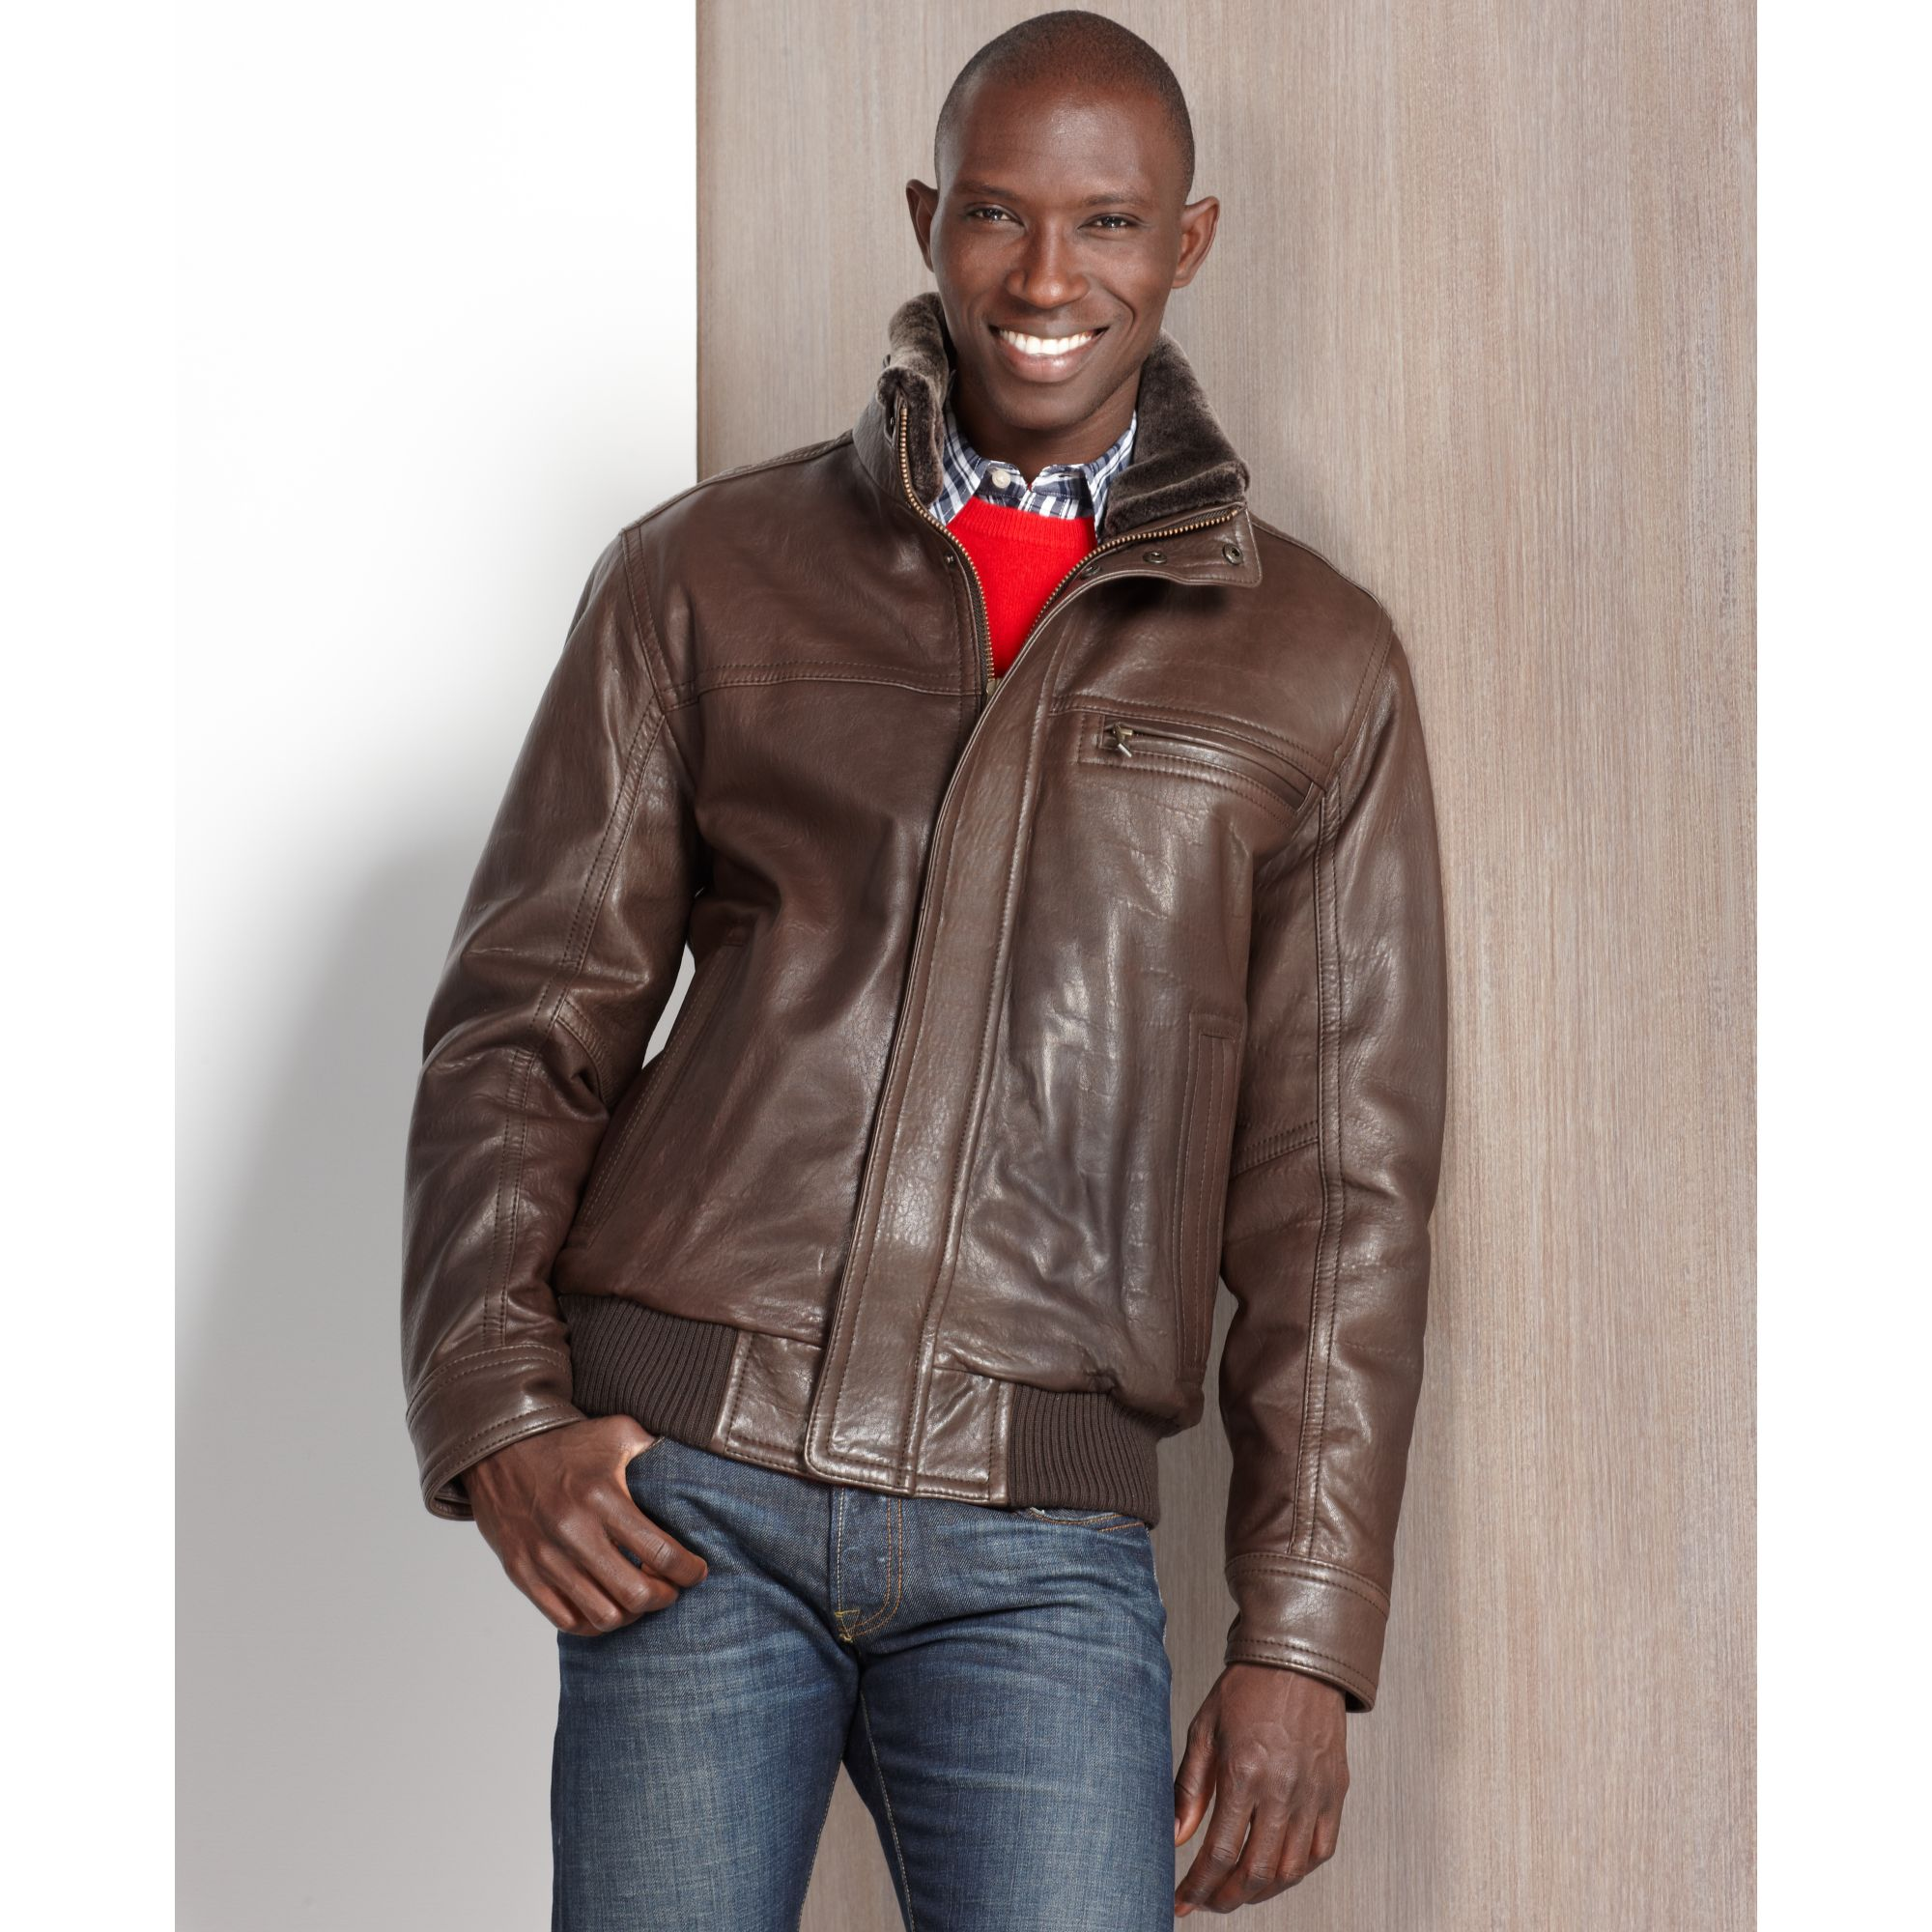 xsmall our racer updates a and leather distressed style rugged streamlined with silhouette distinctive ax jackets black jacket caf pin rug the job